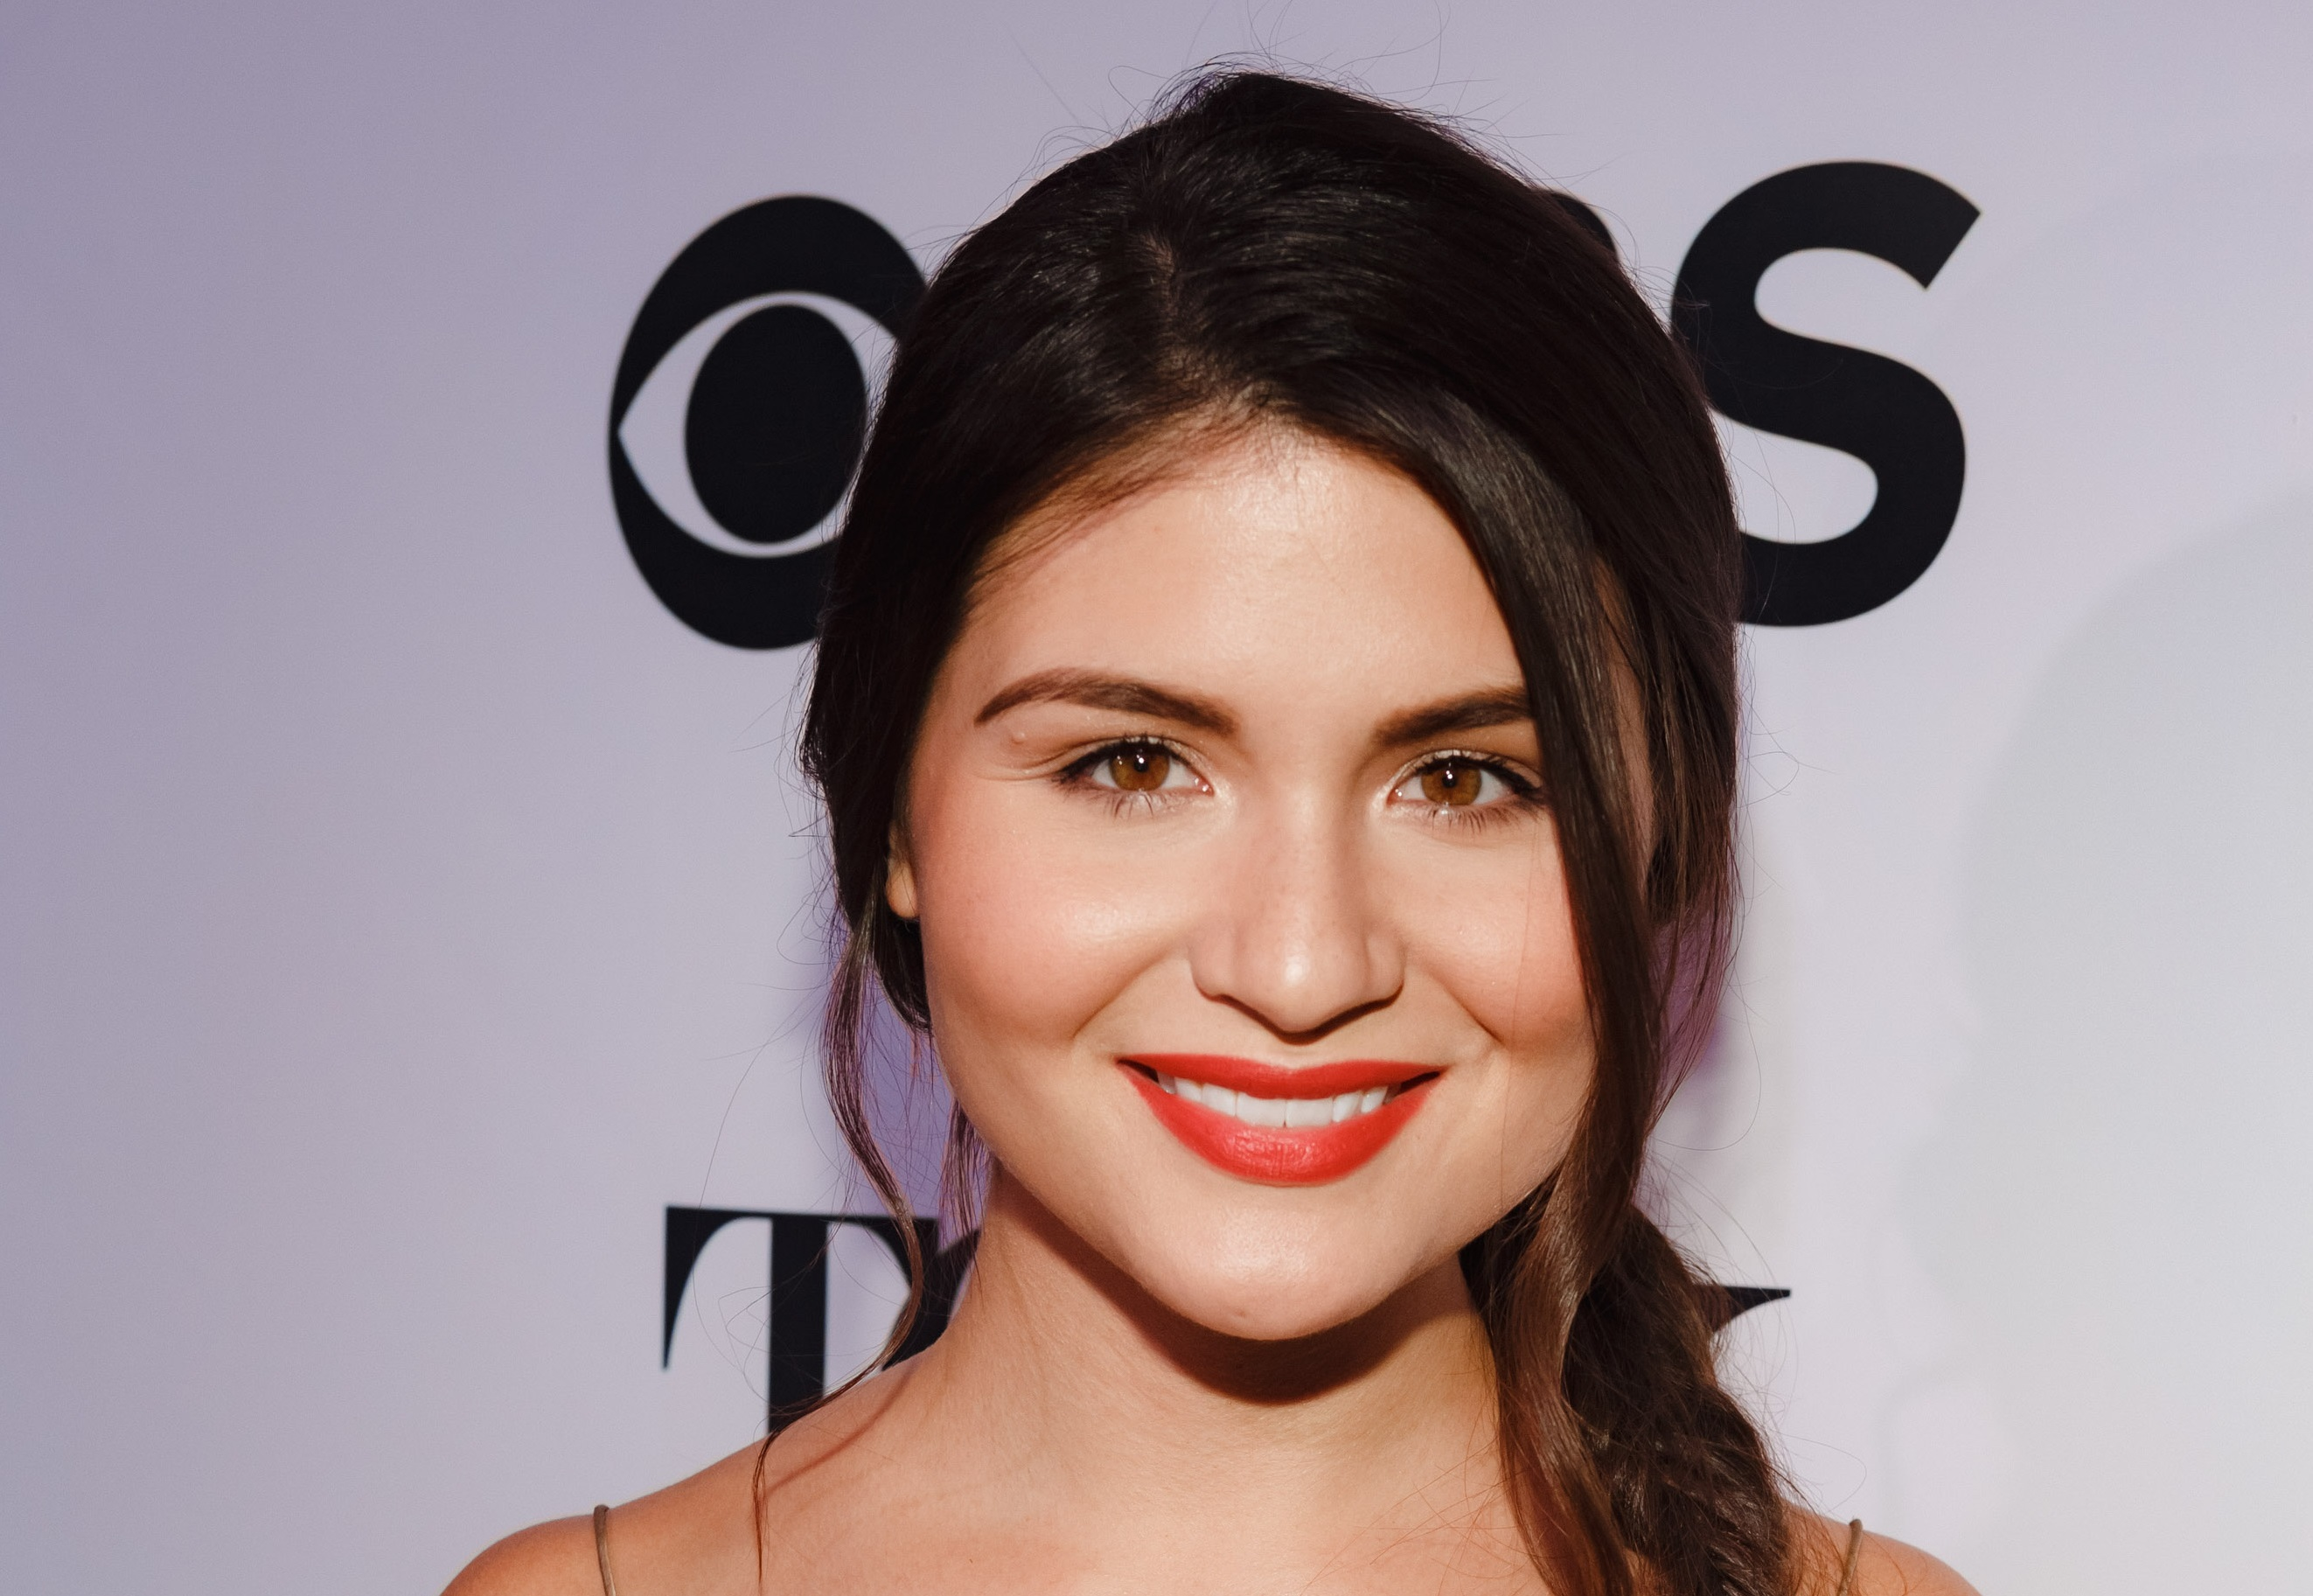 Phillipa Soo Wallpapers Images Photos Pictures Backgrounds